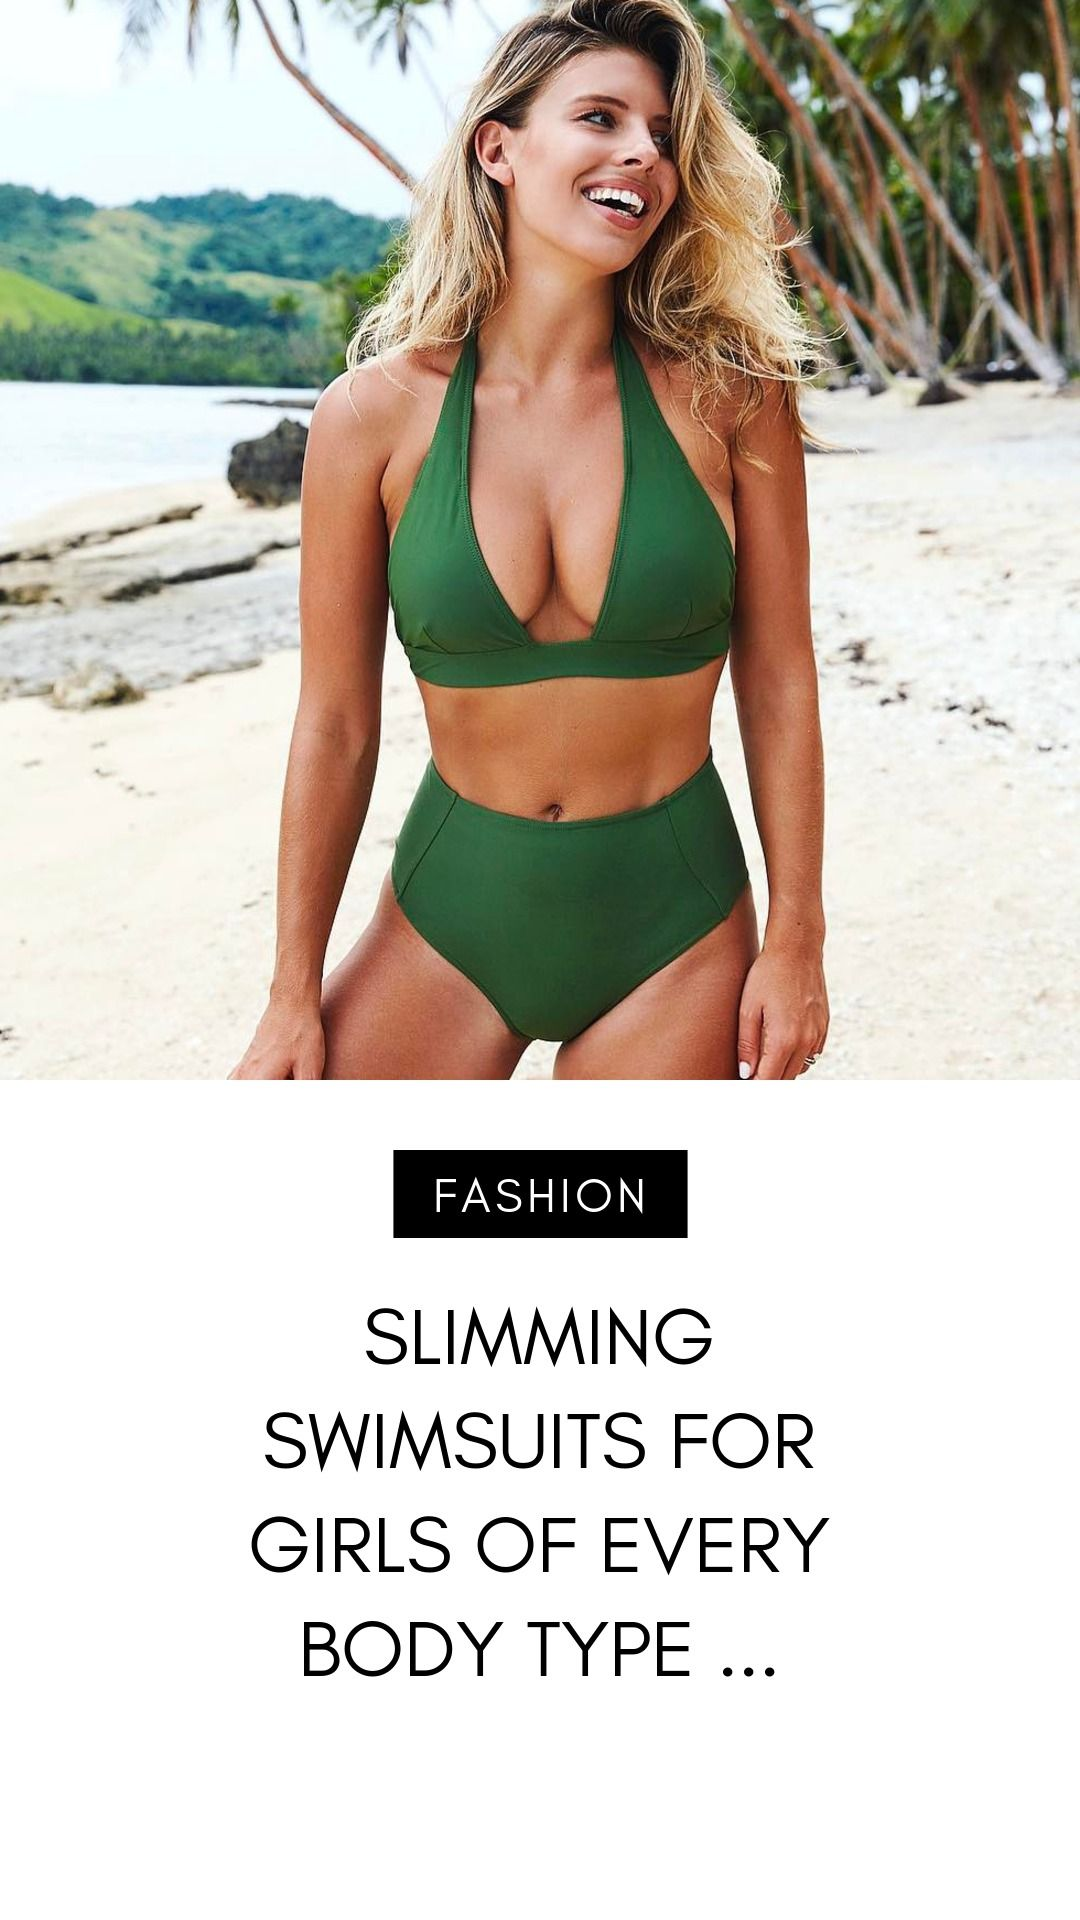 97feb168fac13 Takeaway: What's the best slimming swimsuit style for my body shape? We've  found slimming swimsuits for girls of every body type! According…